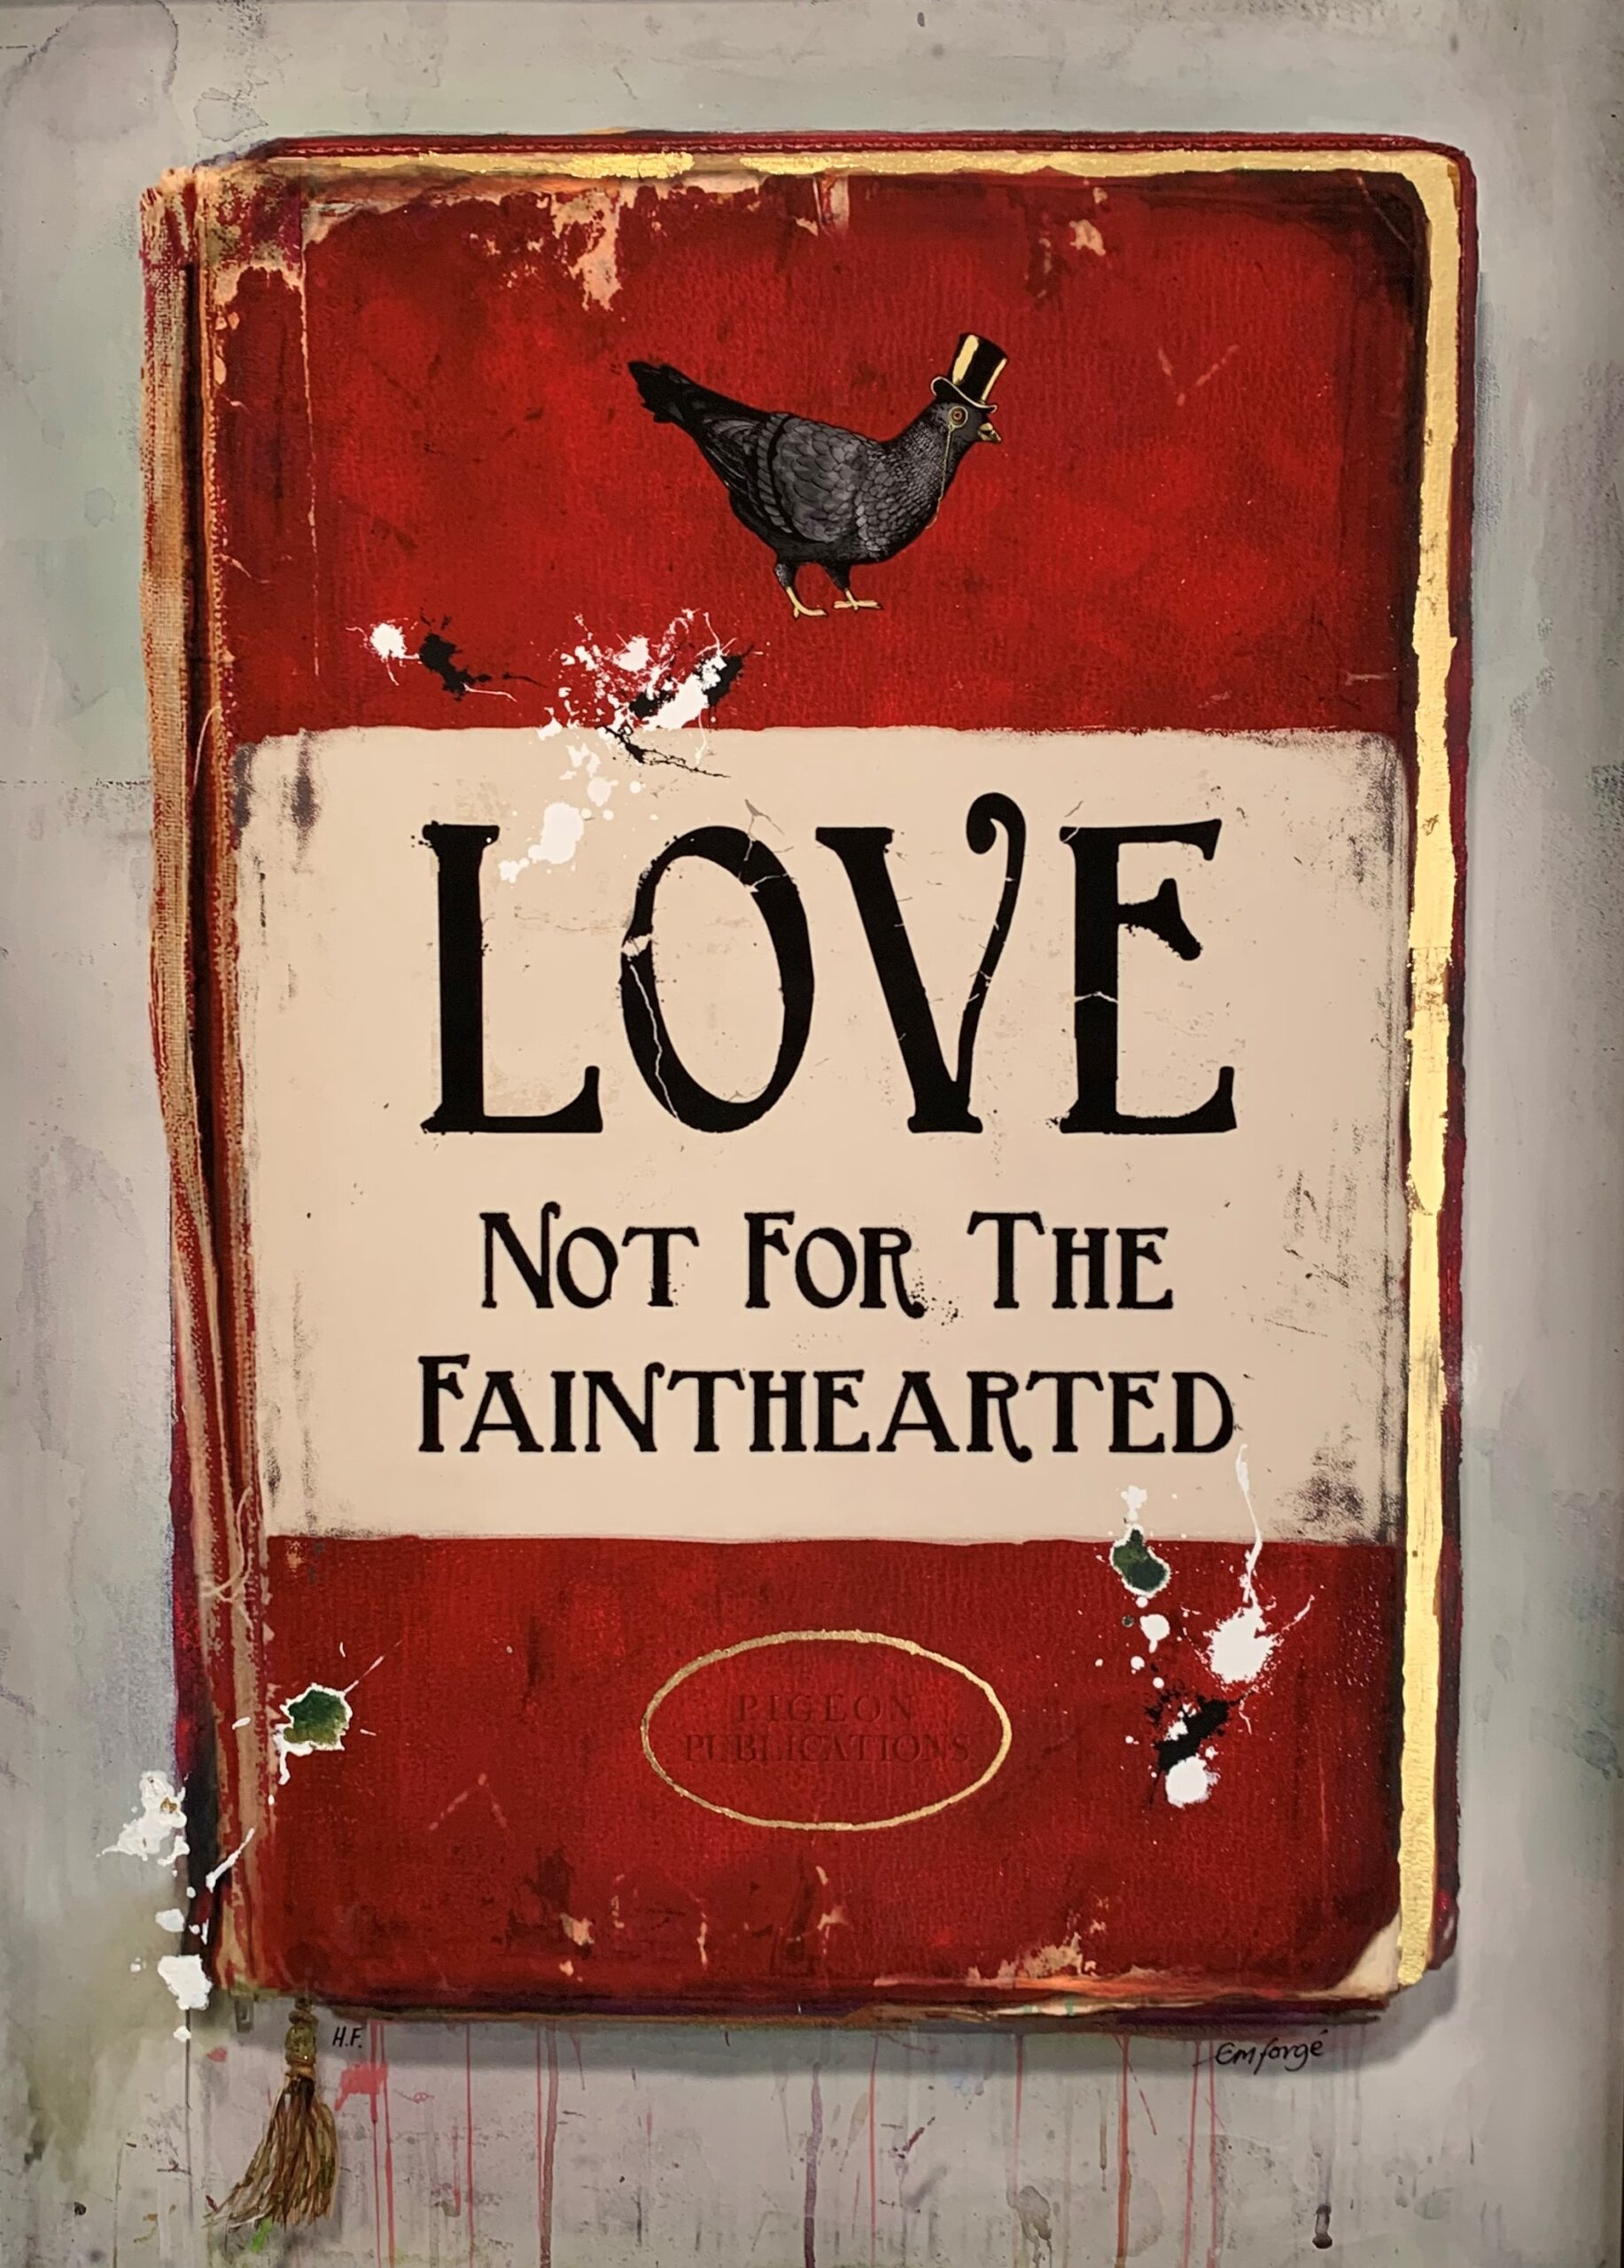 Love Not For The Fainthearted